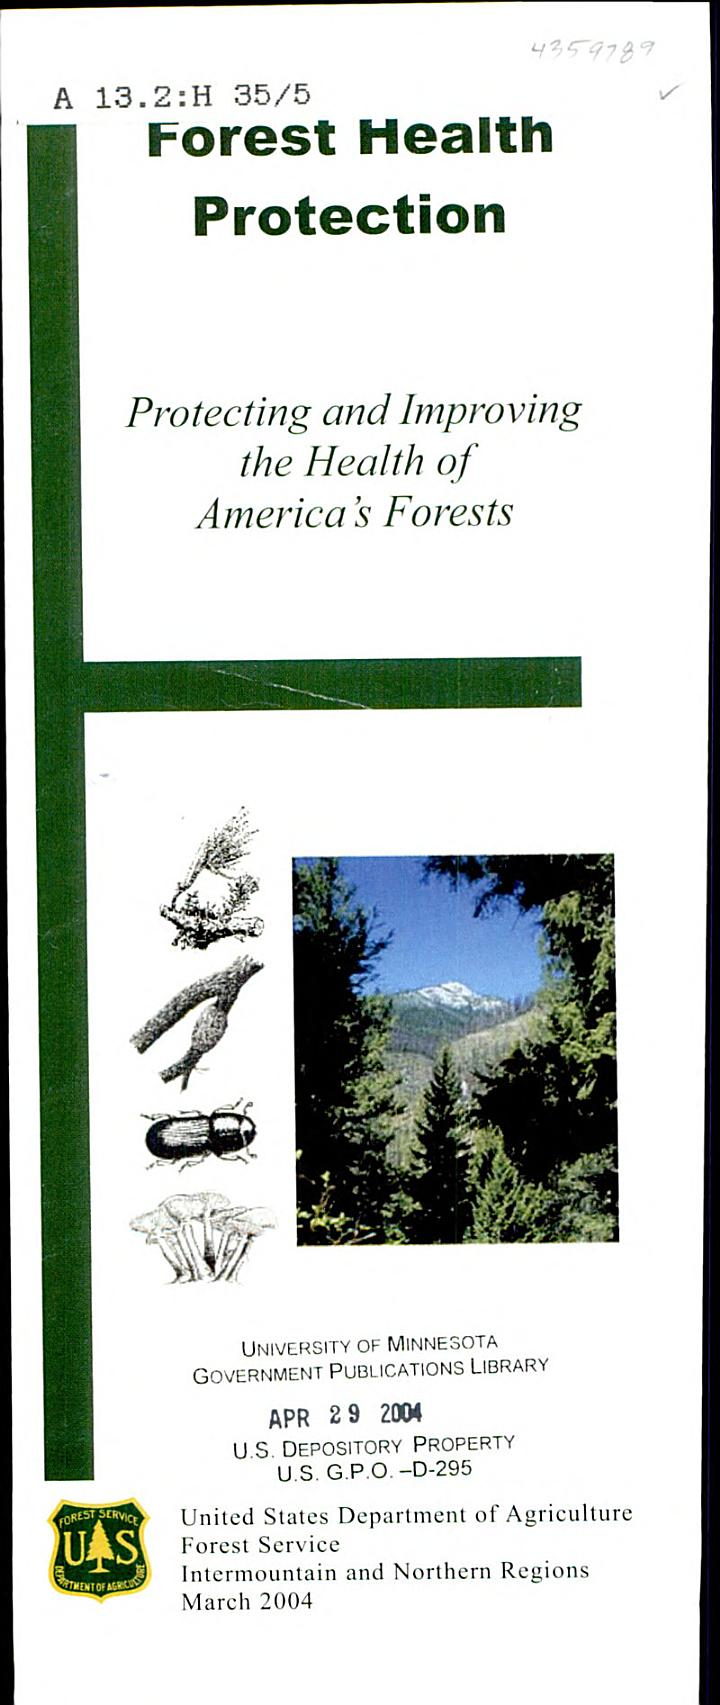 Protecting and improving the health of America's forests